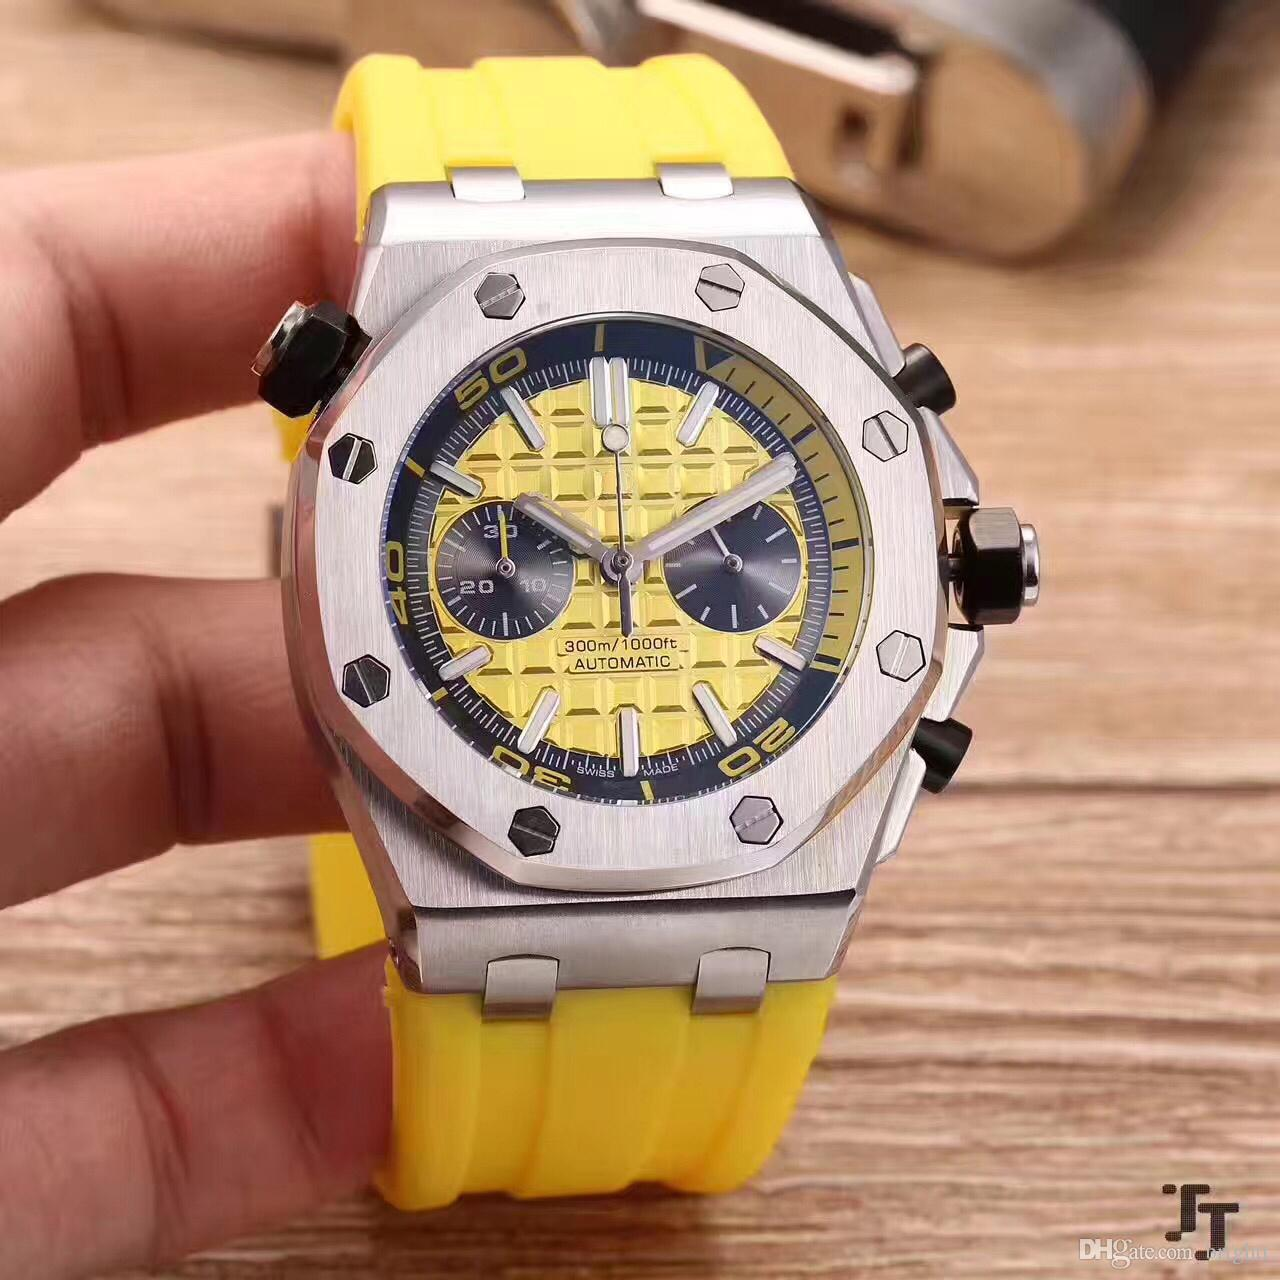 5 Color 2019 Hot Sale 망 Watch 자동 기계식 운동 ROYAL OAK series 망 Watch 15400 Stainless Steel 망 시계